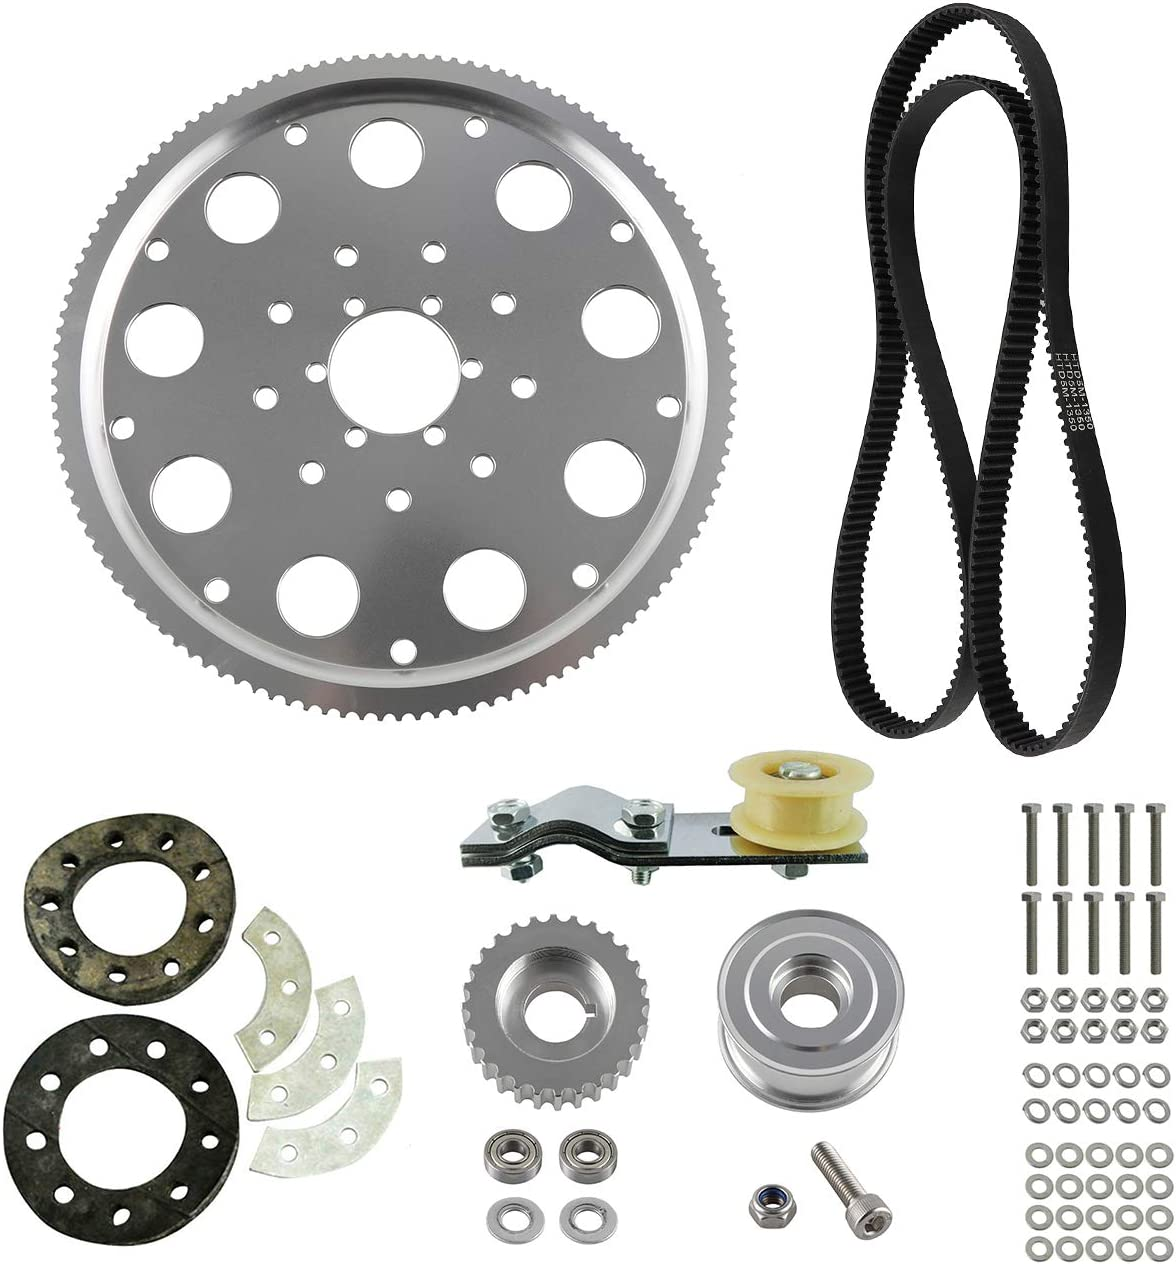 UAUS Belt Drive Sprocket Kit Chain Tension No More 415 Chain For 66cc 80cc 2 Stroke Gas Engine Motorized Bike